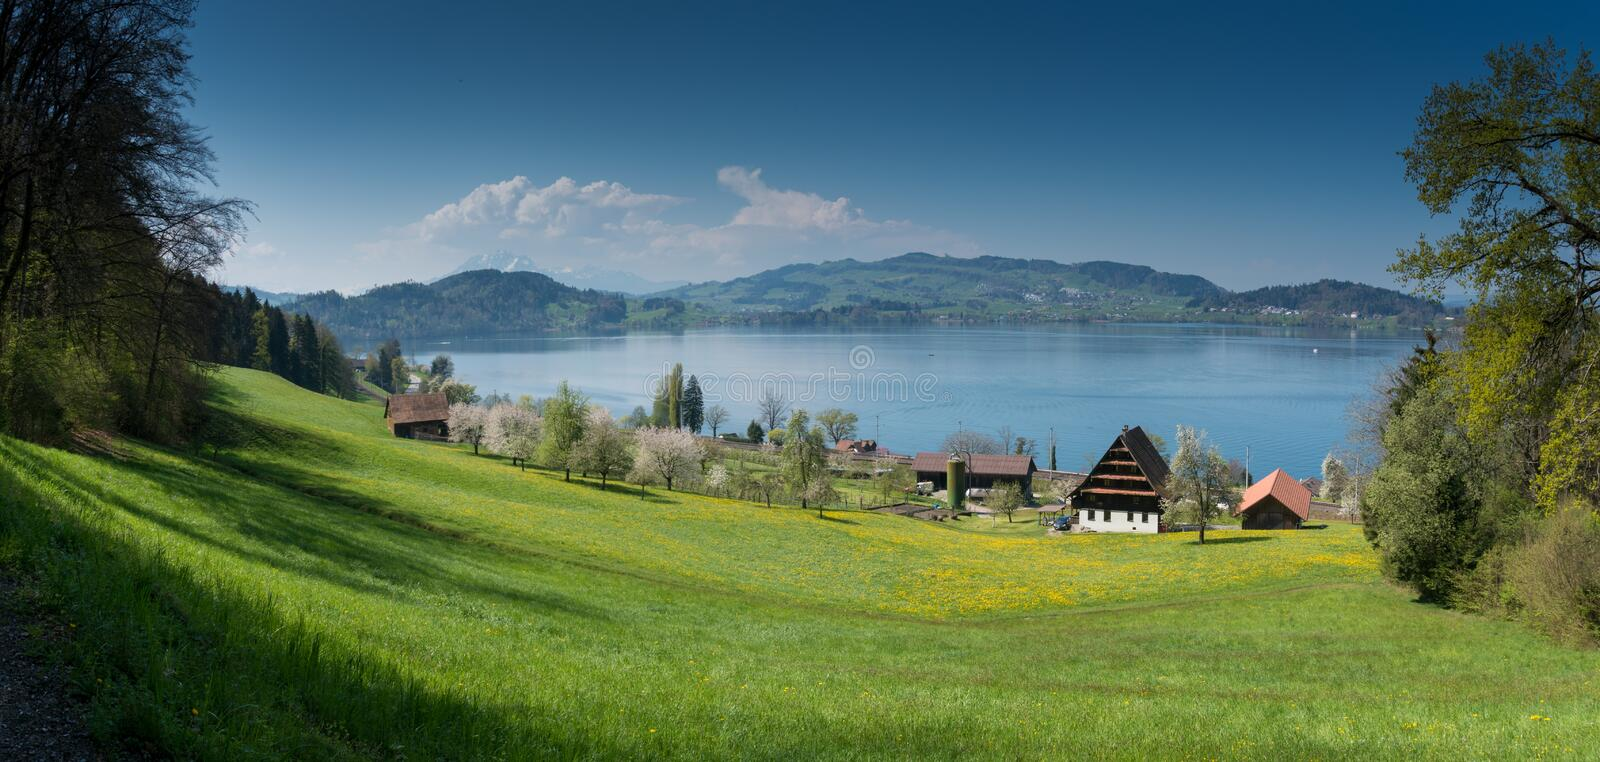 Idyllic Swiss country mountain landscape with farms lake and mountains in the distance. View of picturesque Swiss mountain and lake landscape at the Zugersee royalty free stock images